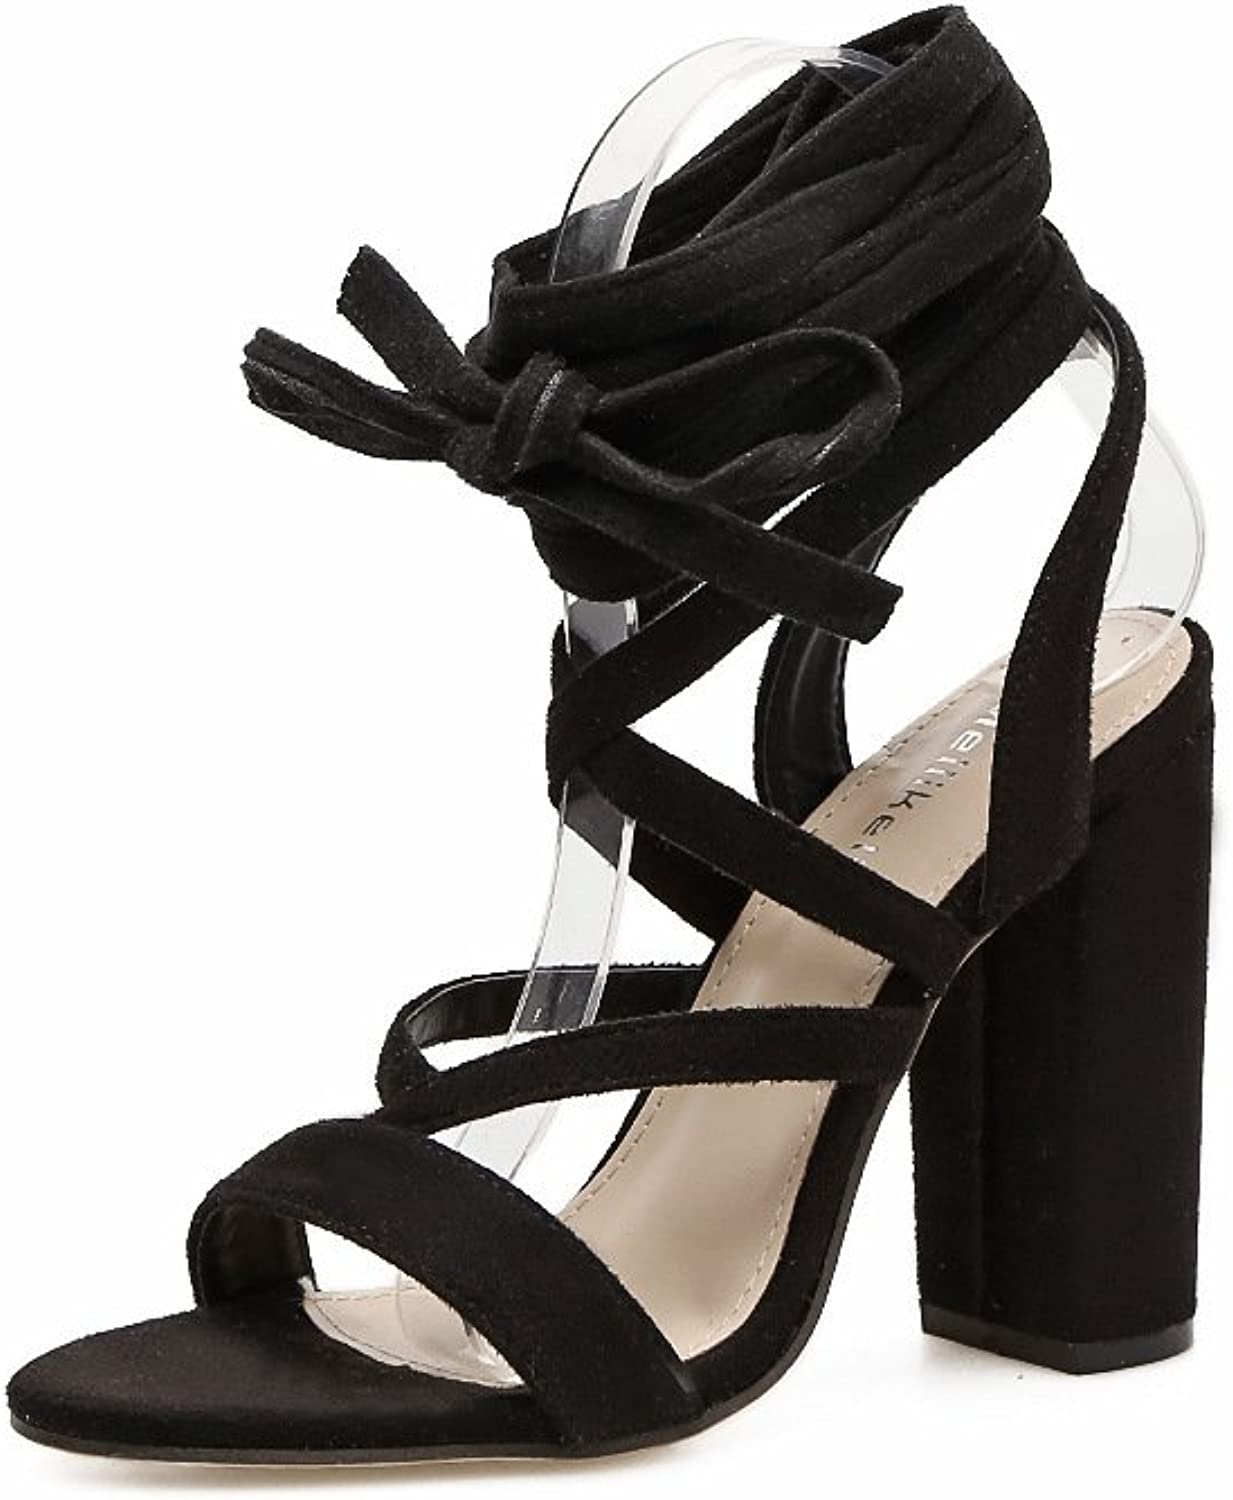 The Stylish high-Heel Sandals Satin Cross Straps Sexy Stylish Thick with high-Heeled Sandals